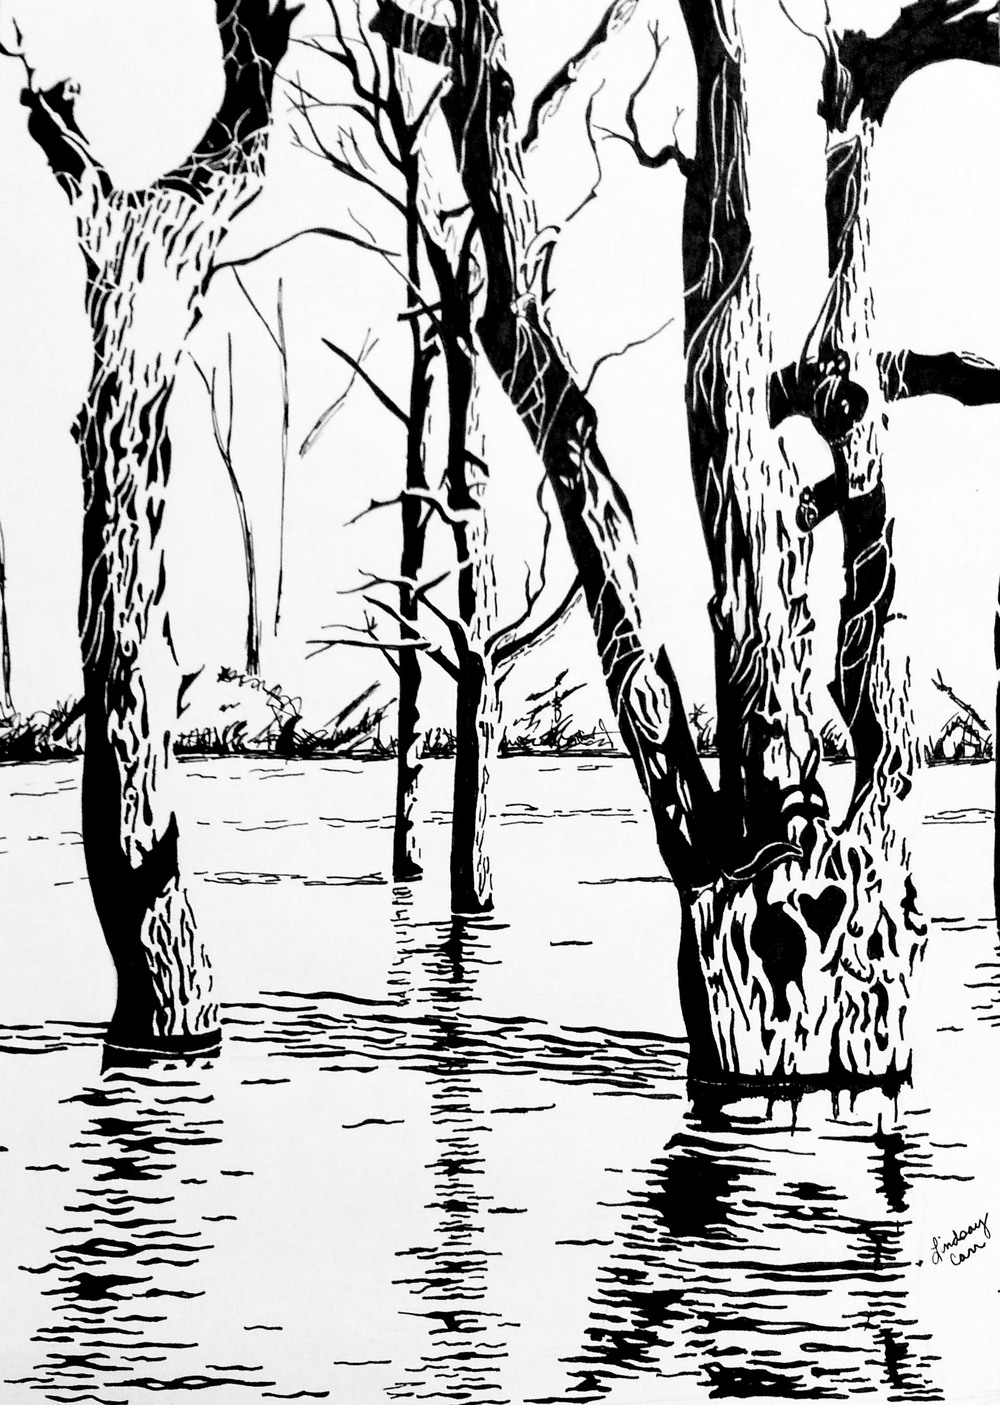 inked trees flood